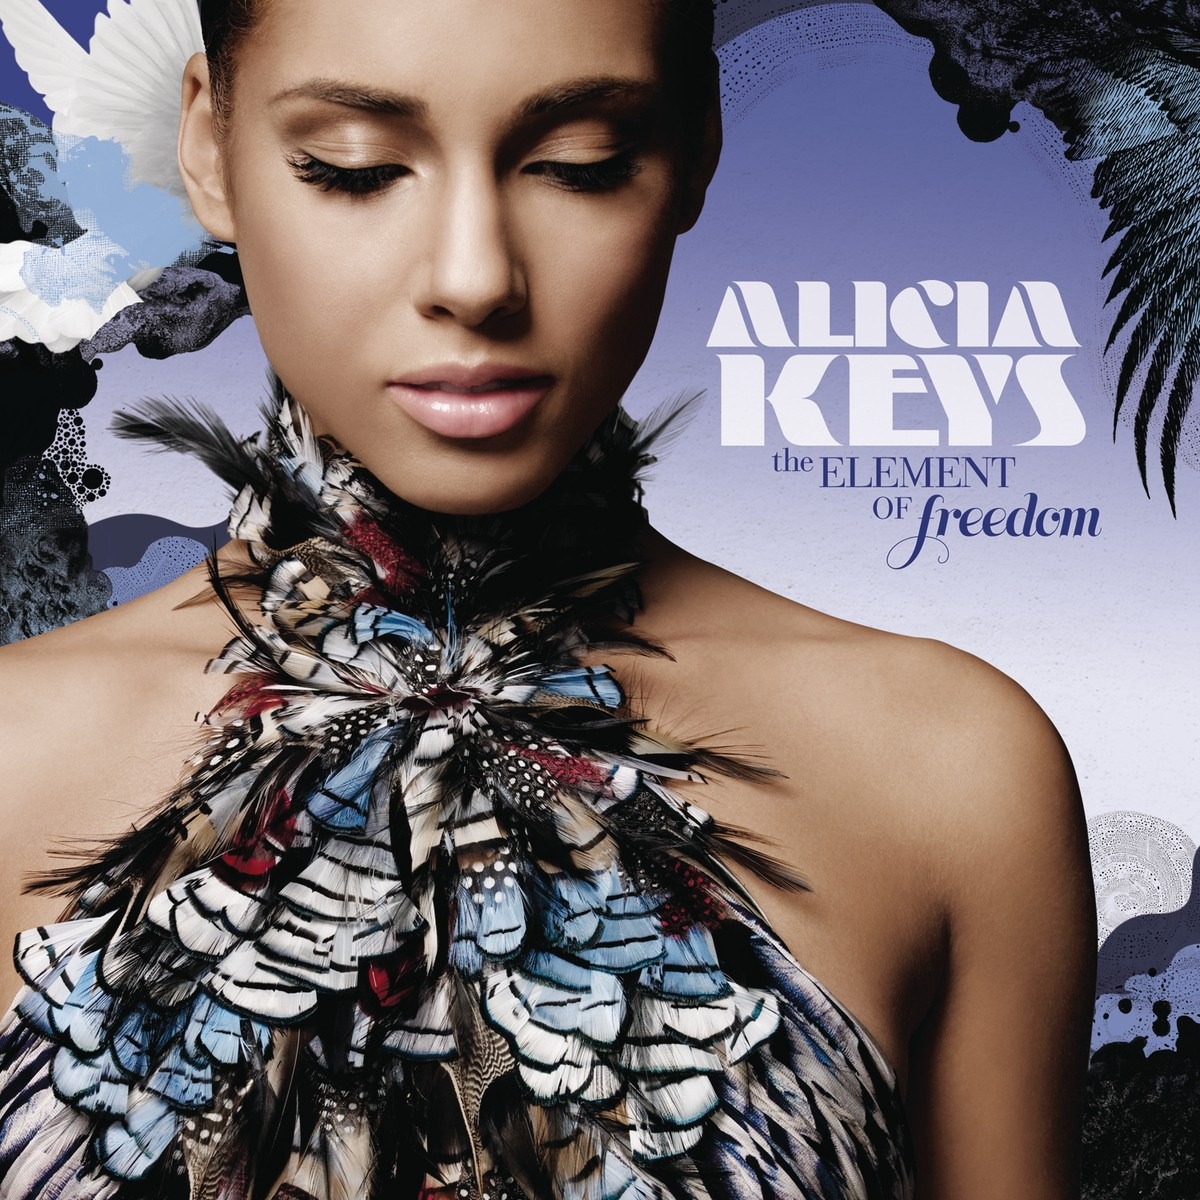 http://4.bp.blogspot.com/-Ppq3qczJHgU/UGLiKp2cqoI/AAAAAAAAXbI/_wBvPtCZwYc/s1600/Alicia_Keys-The_Element_Of_Freedom+-Frontal.jpg